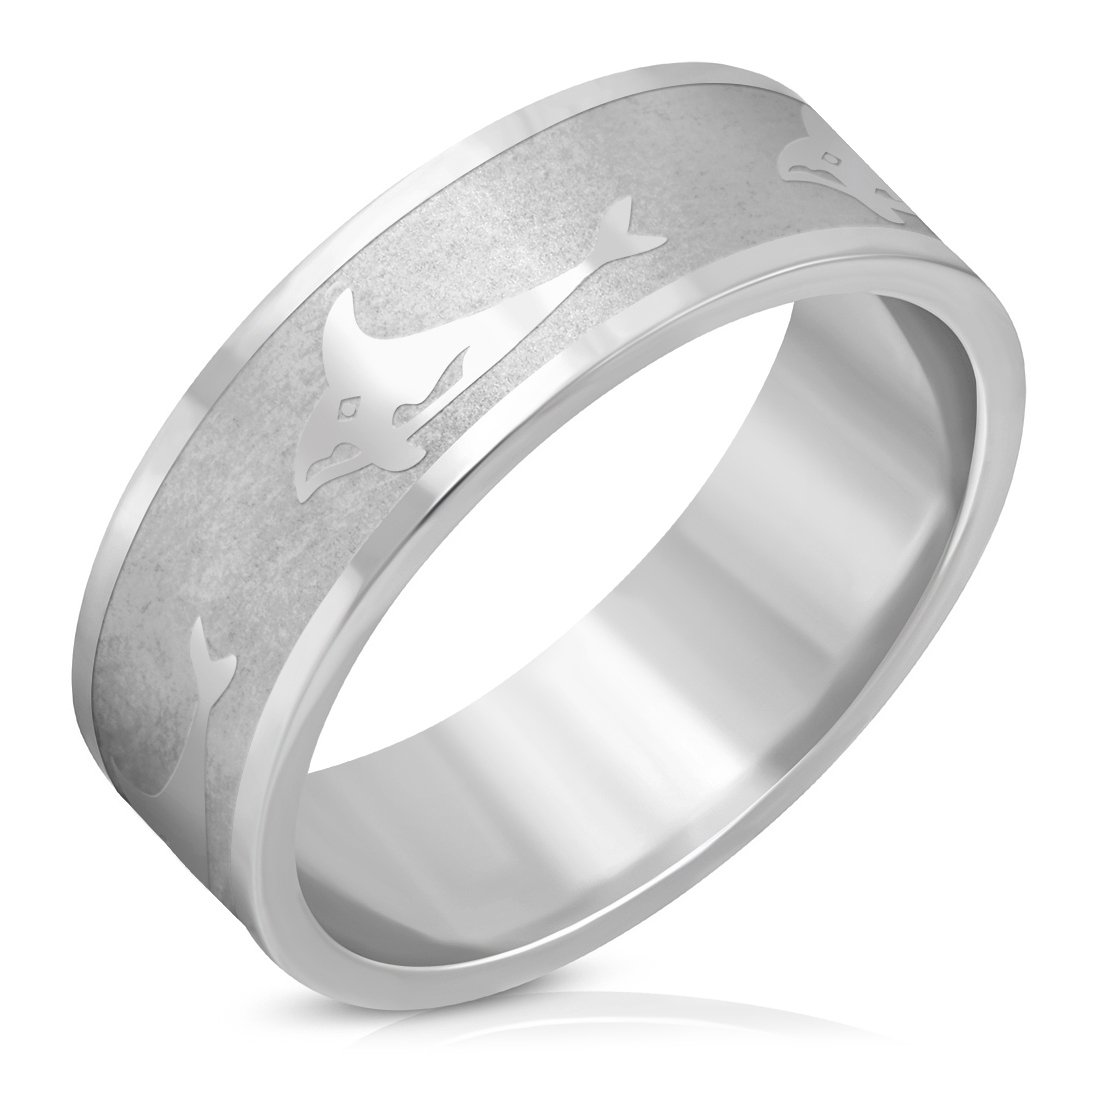 Stainless Steel Matte Finished Shark Fish Flat Band Ring